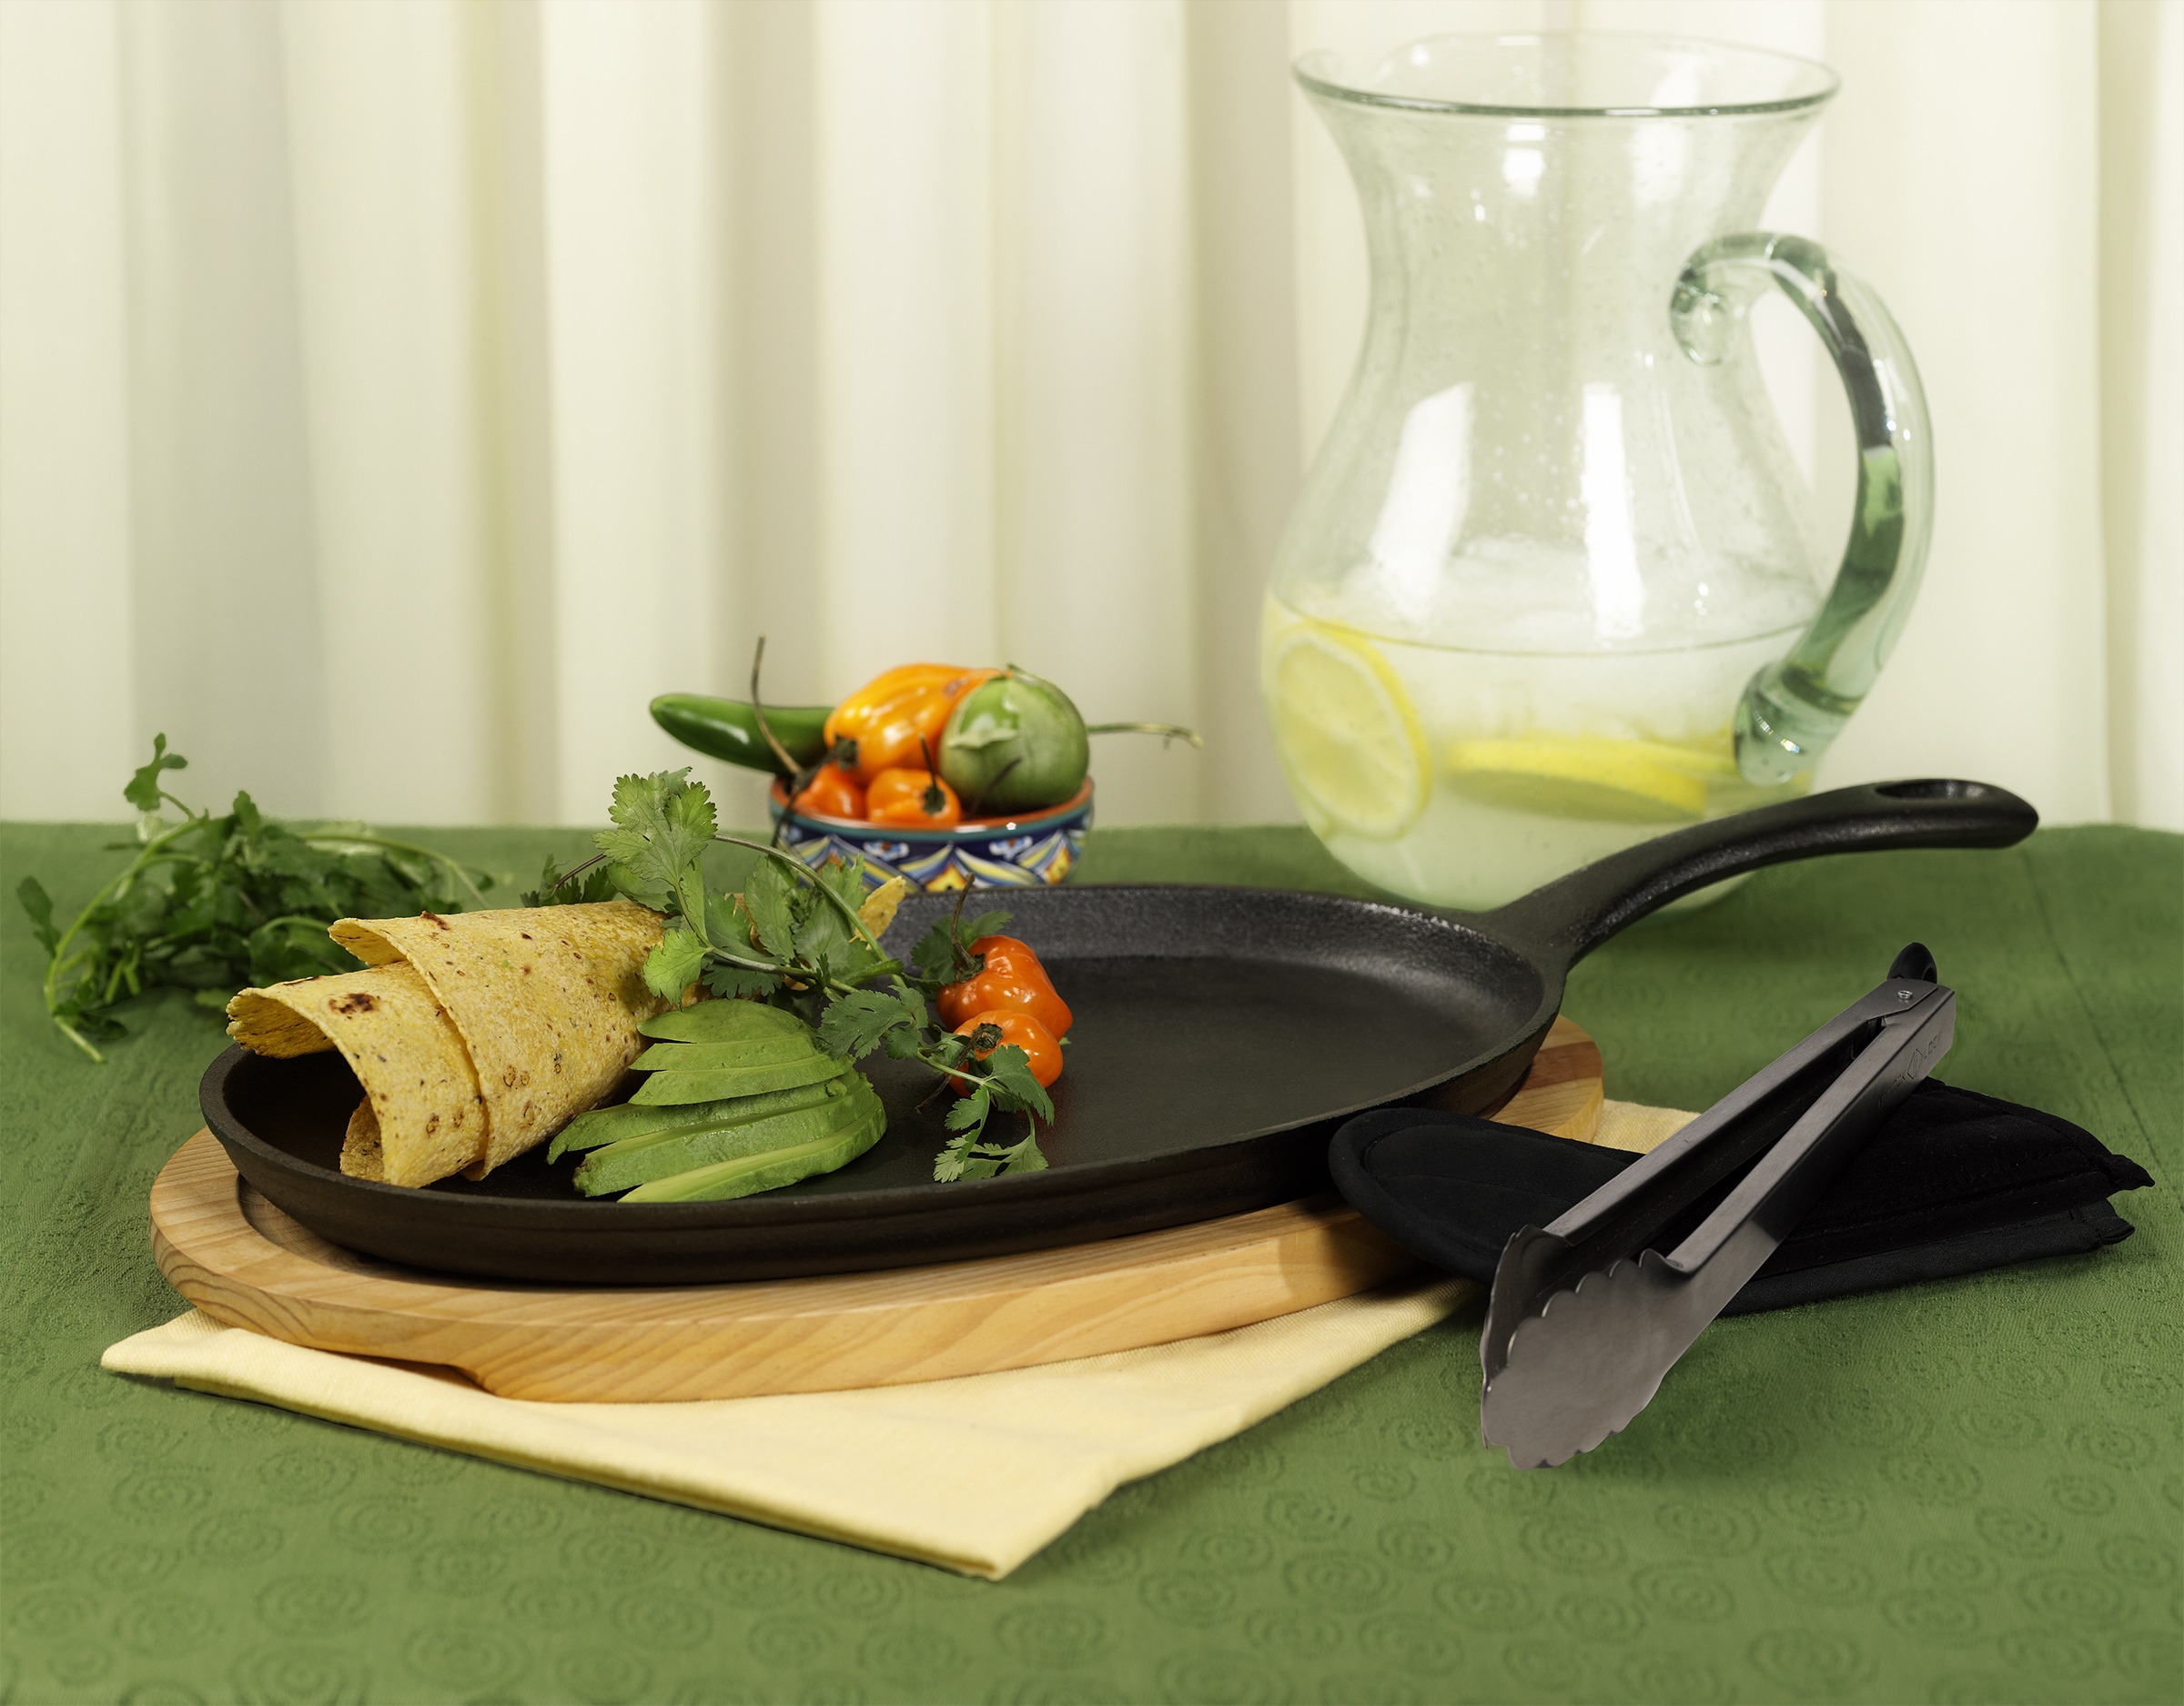 4 Piece Pre-seasoned Cast Iron Fajita Pan Set With Wood Base by Casa Maria